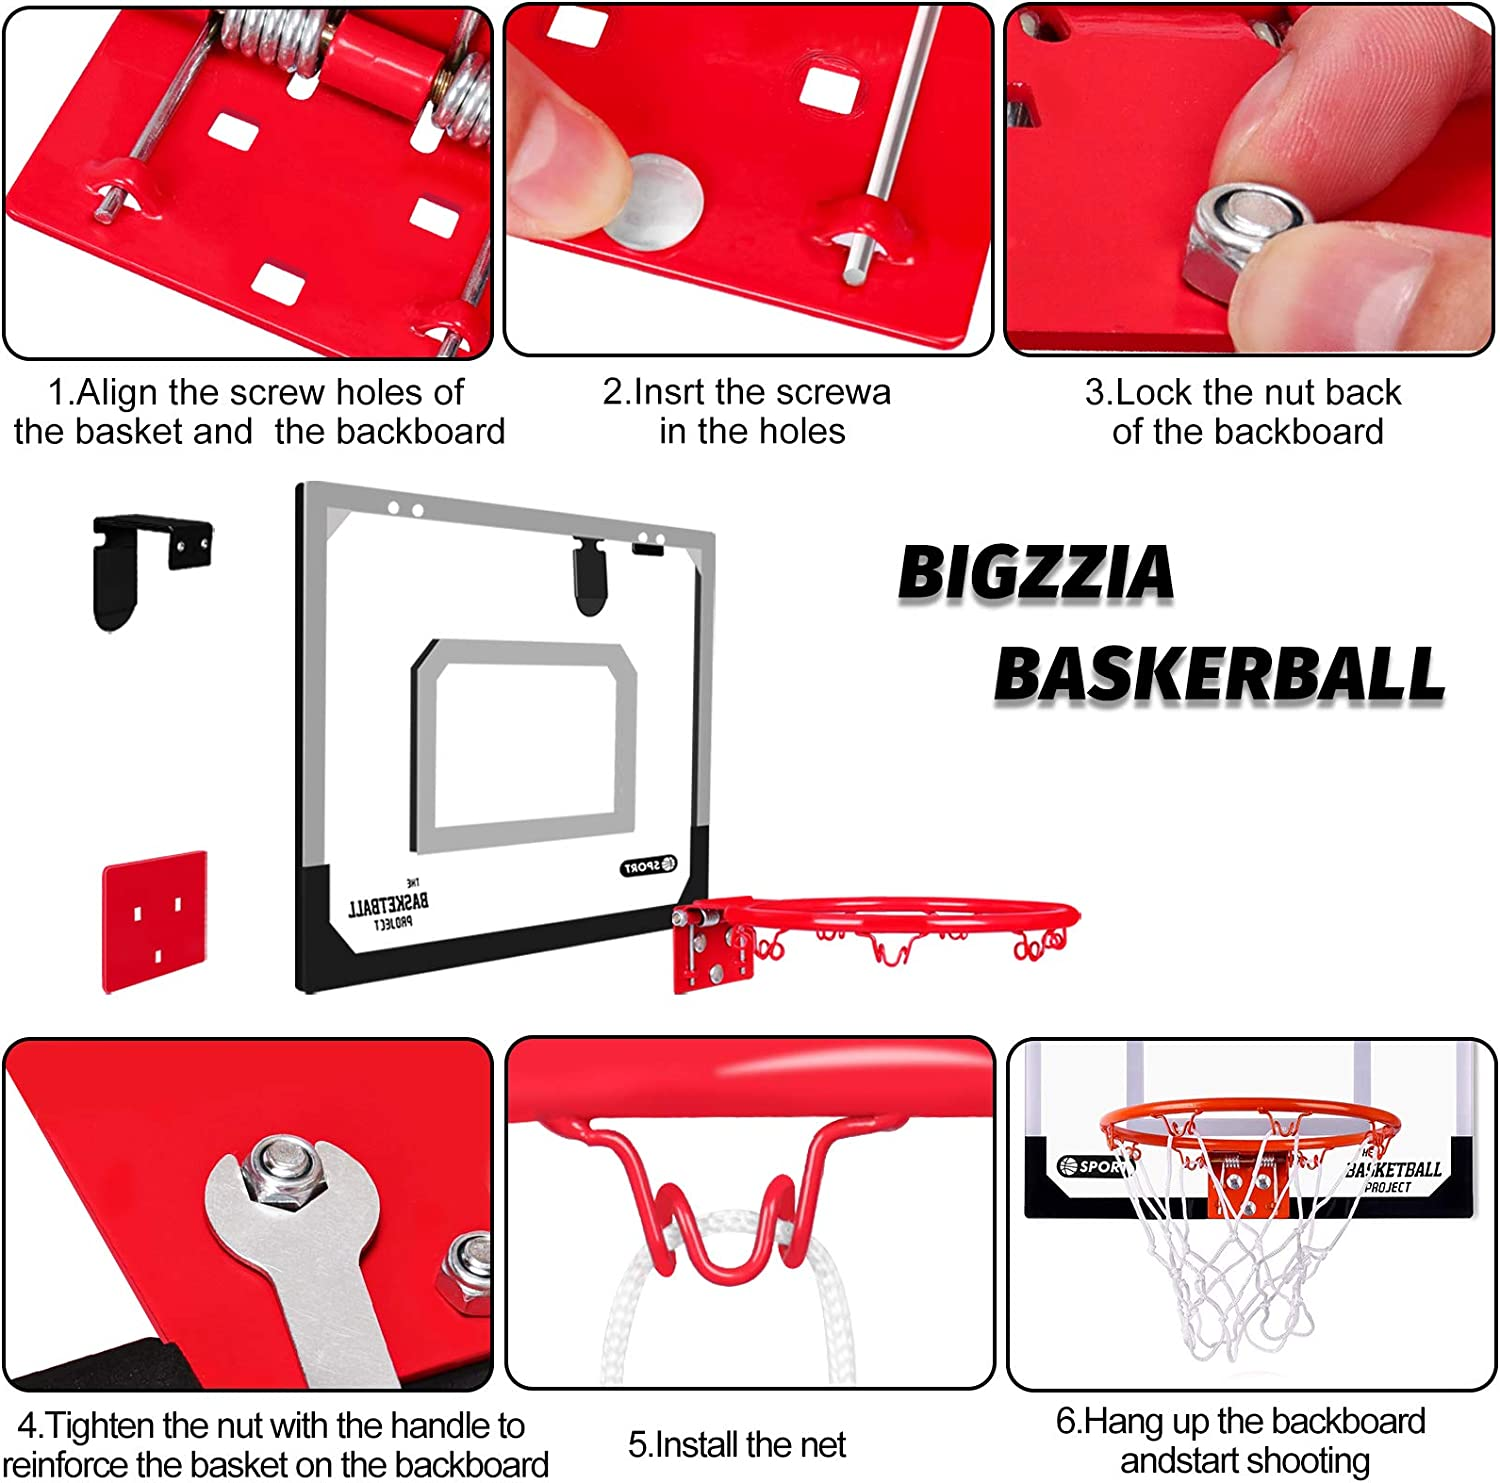 Bigzzia Indoor Basketball Hoop Includes 3 Mini Basketballs & Hand Pump with Needle for Door Wall Kids Adults Indoor Play : Sports & Outdoors